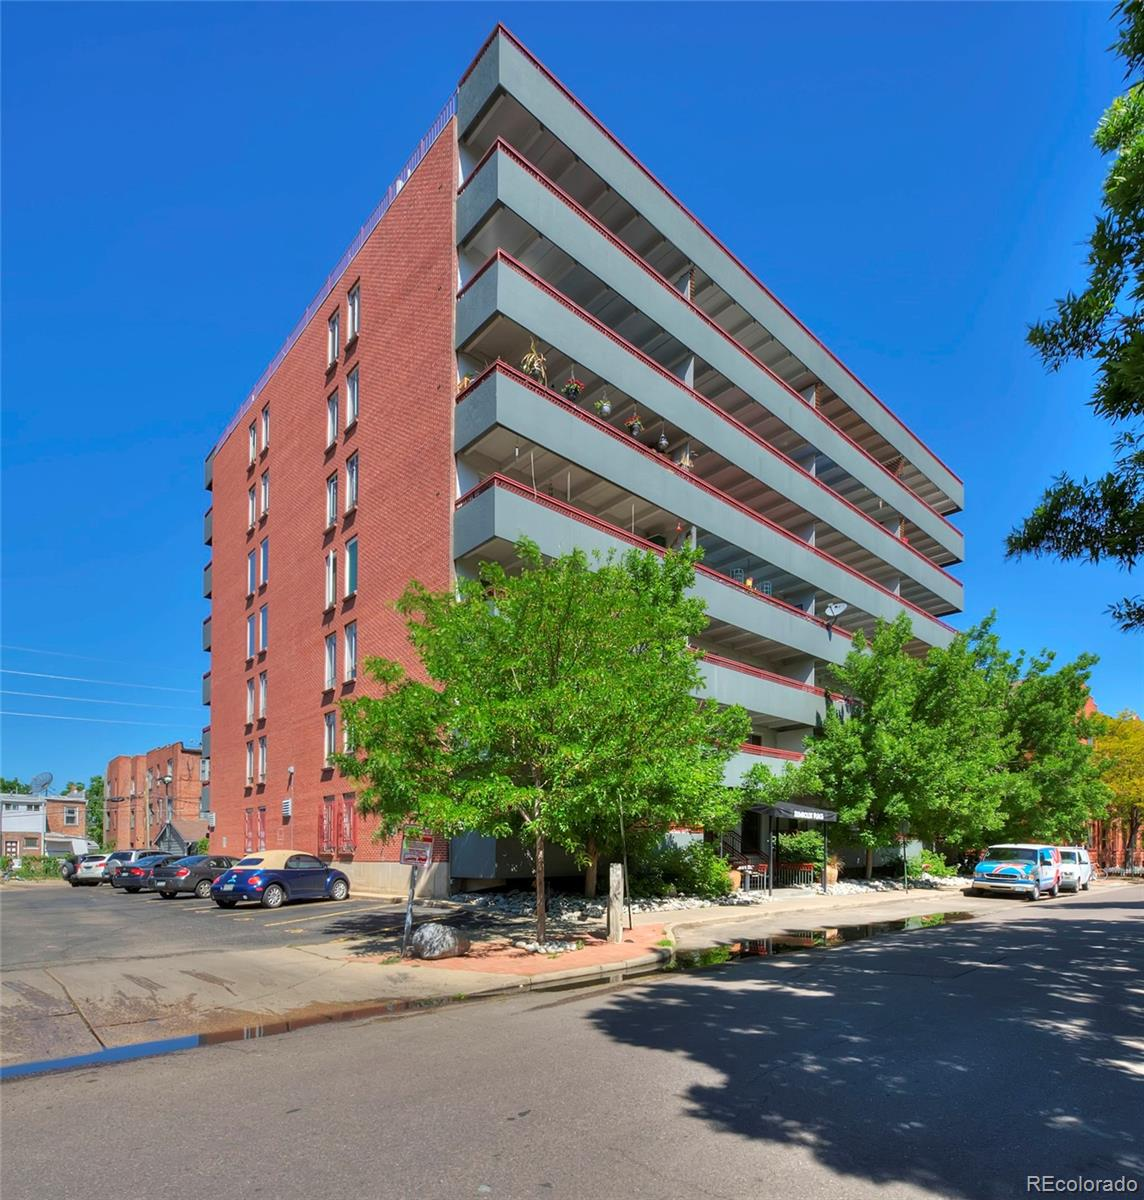 MLS# 8662083 - 1441 N Humboldt Street #407, Denver, CO 80218